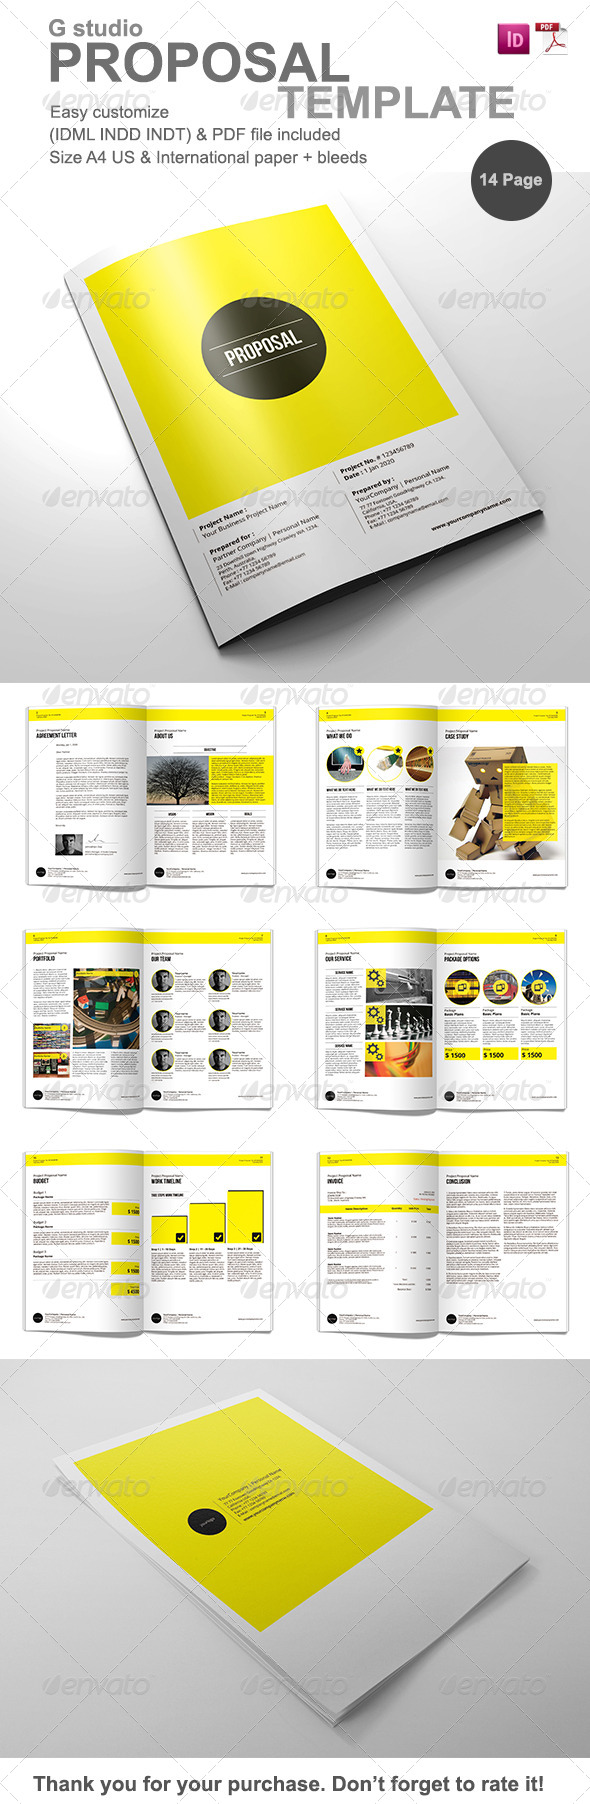 Gstudio Proposal Template - Proposals & Invoices Stationery